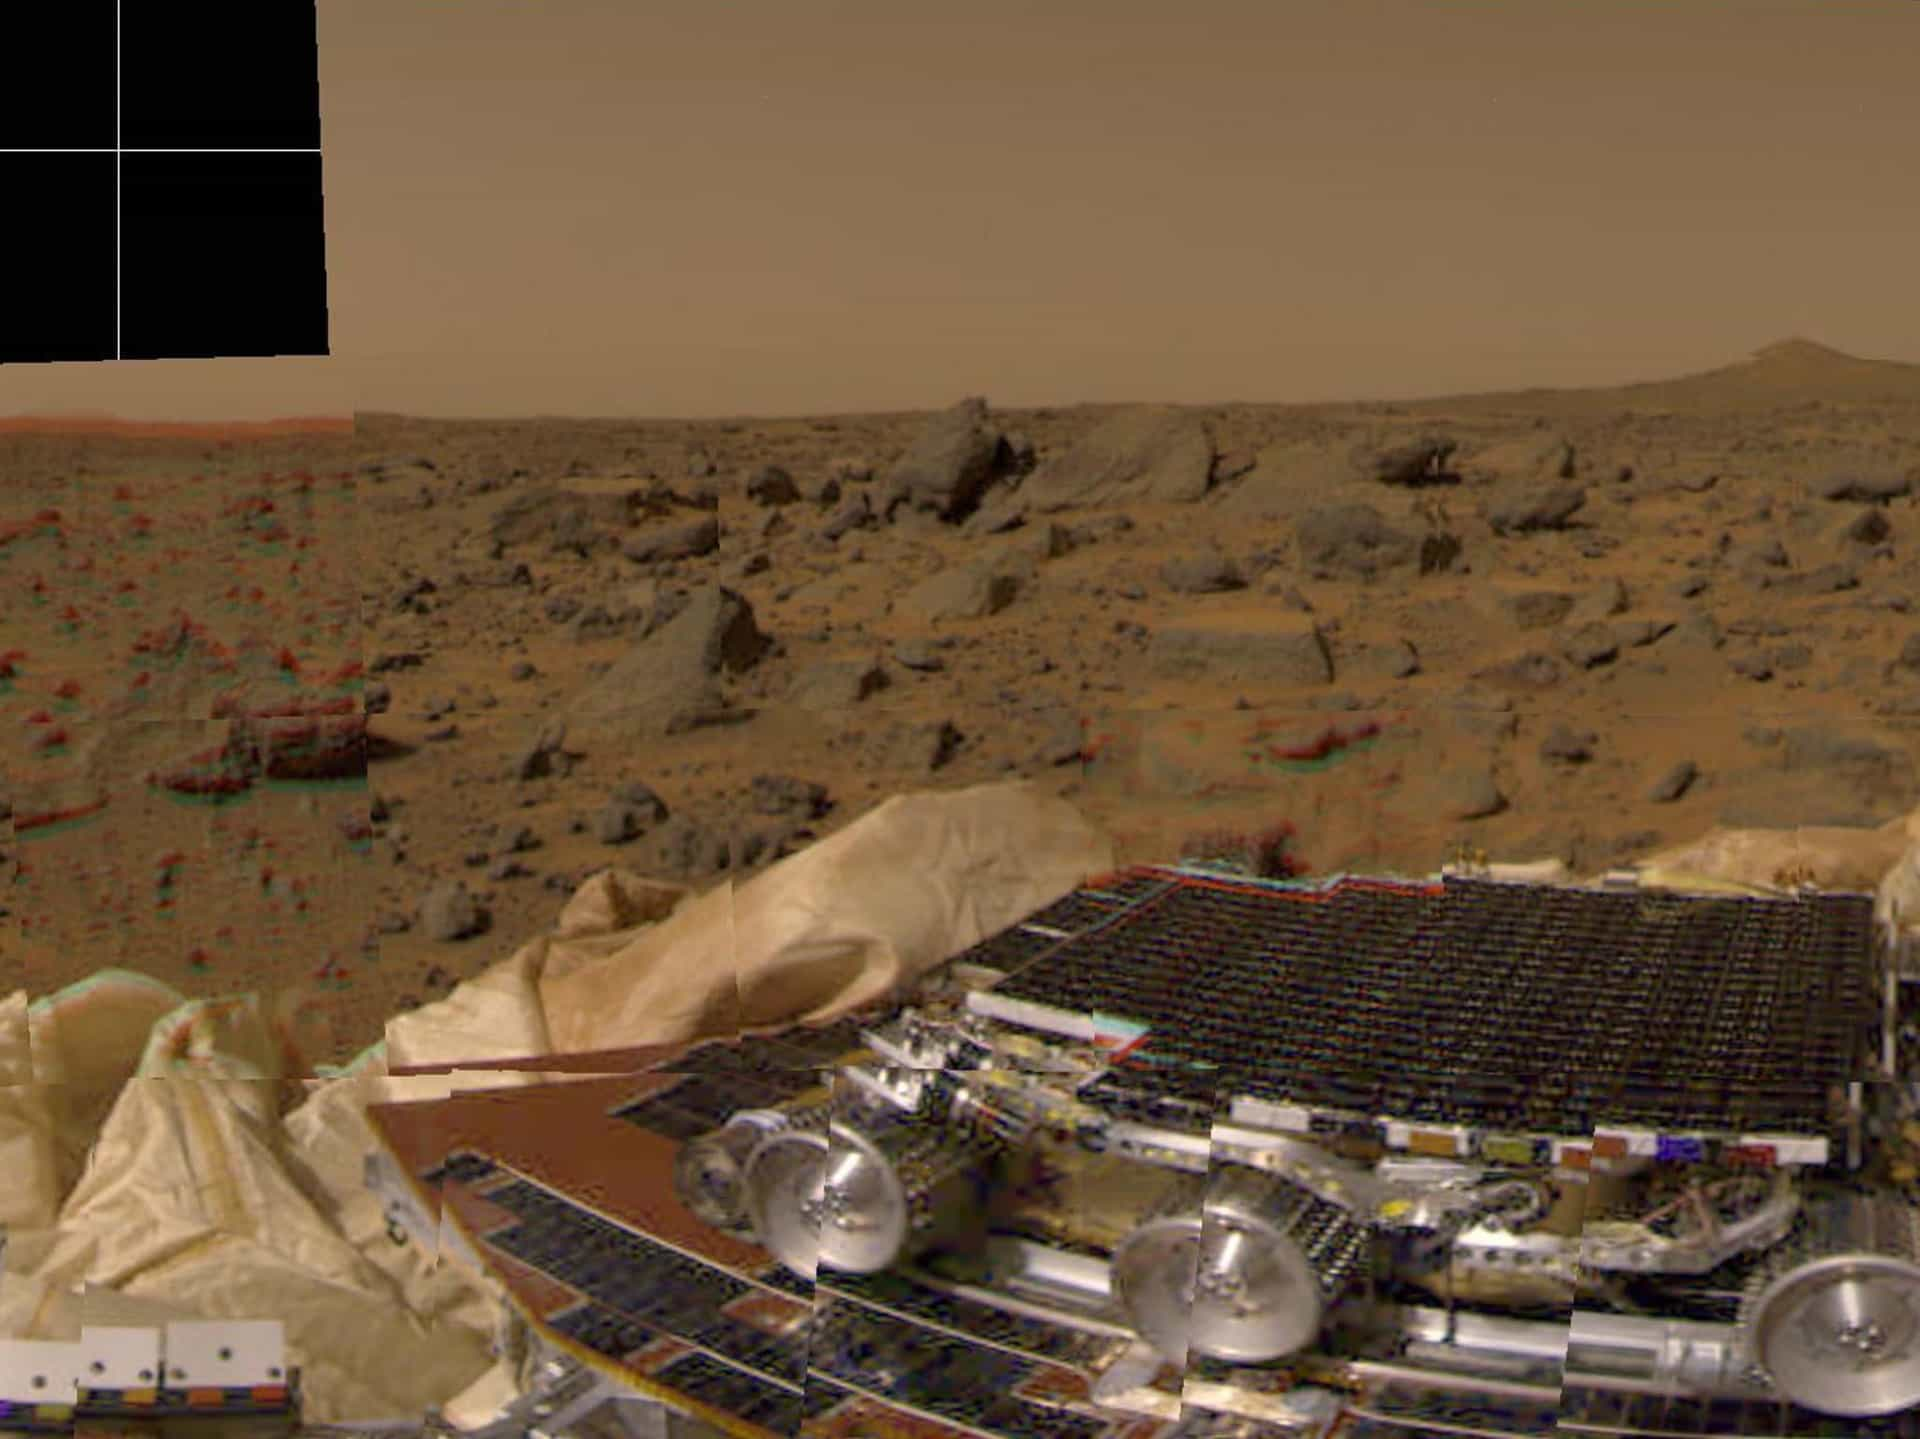 Mission to Mars: every successfully landing on the red planet